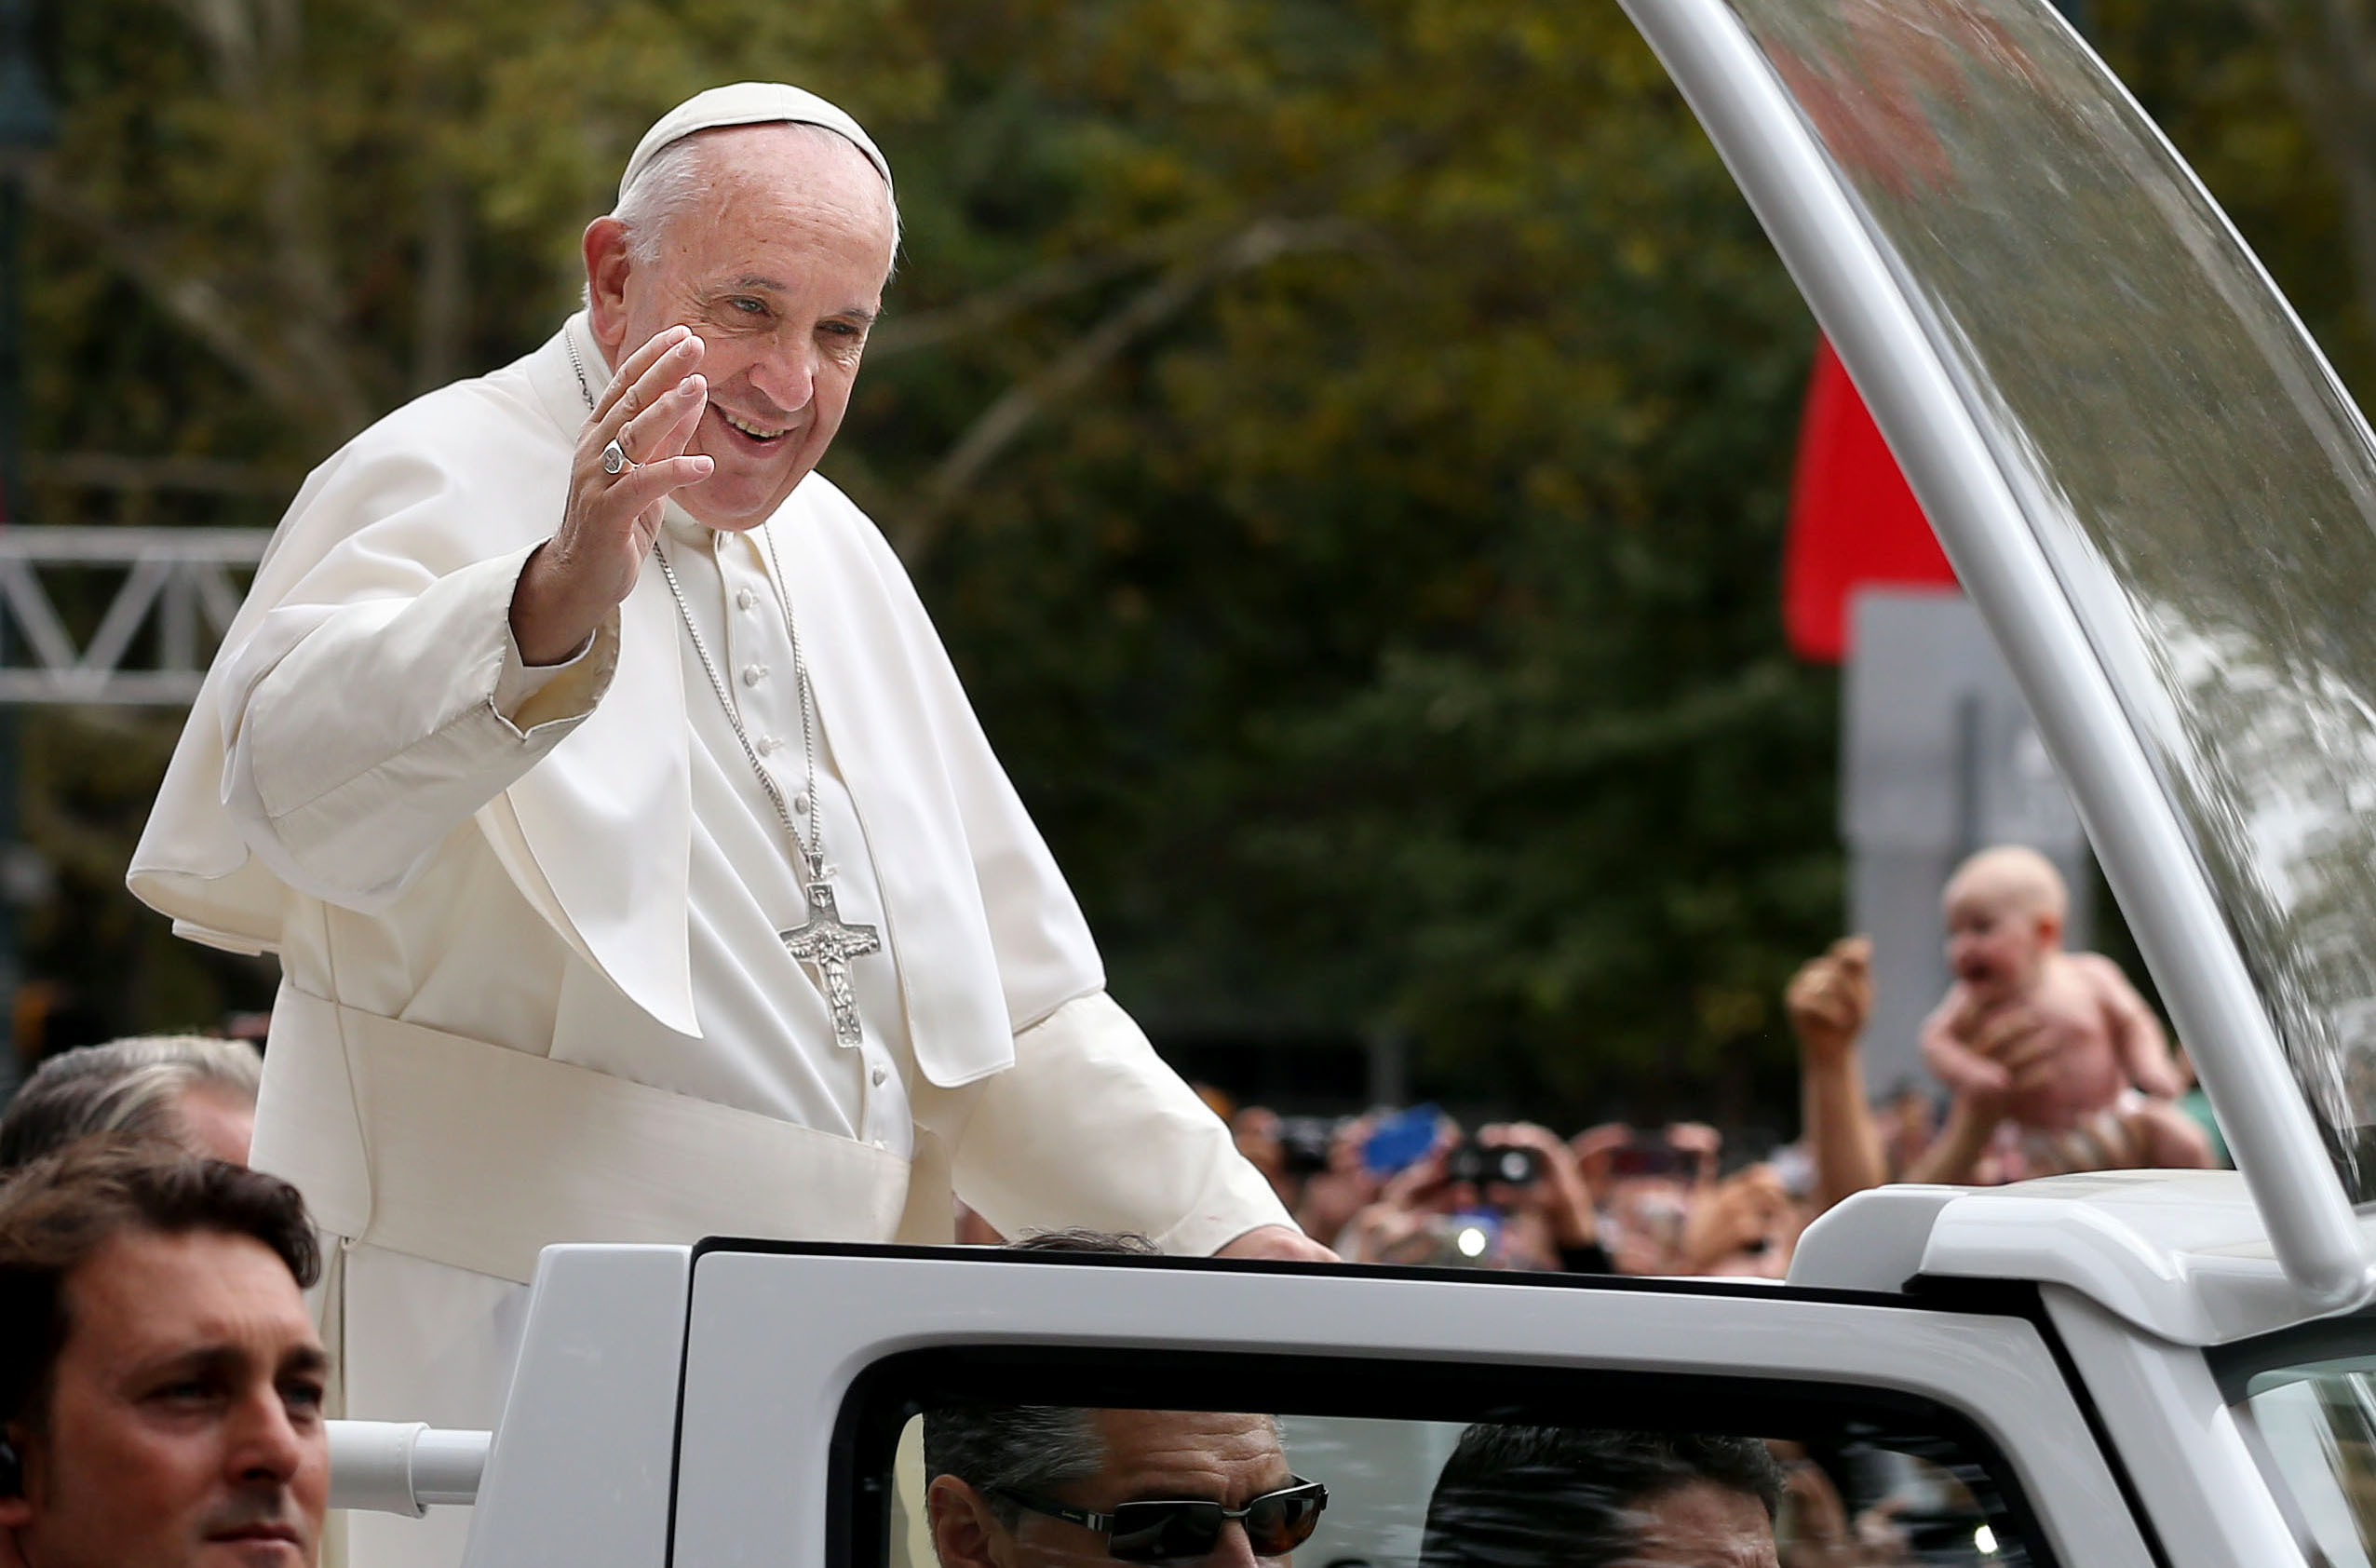 Pope Francis waves to the crowd along Benjamin Franklin Parkway in Philadelphia on Sunday, Sept. 27, 2015.